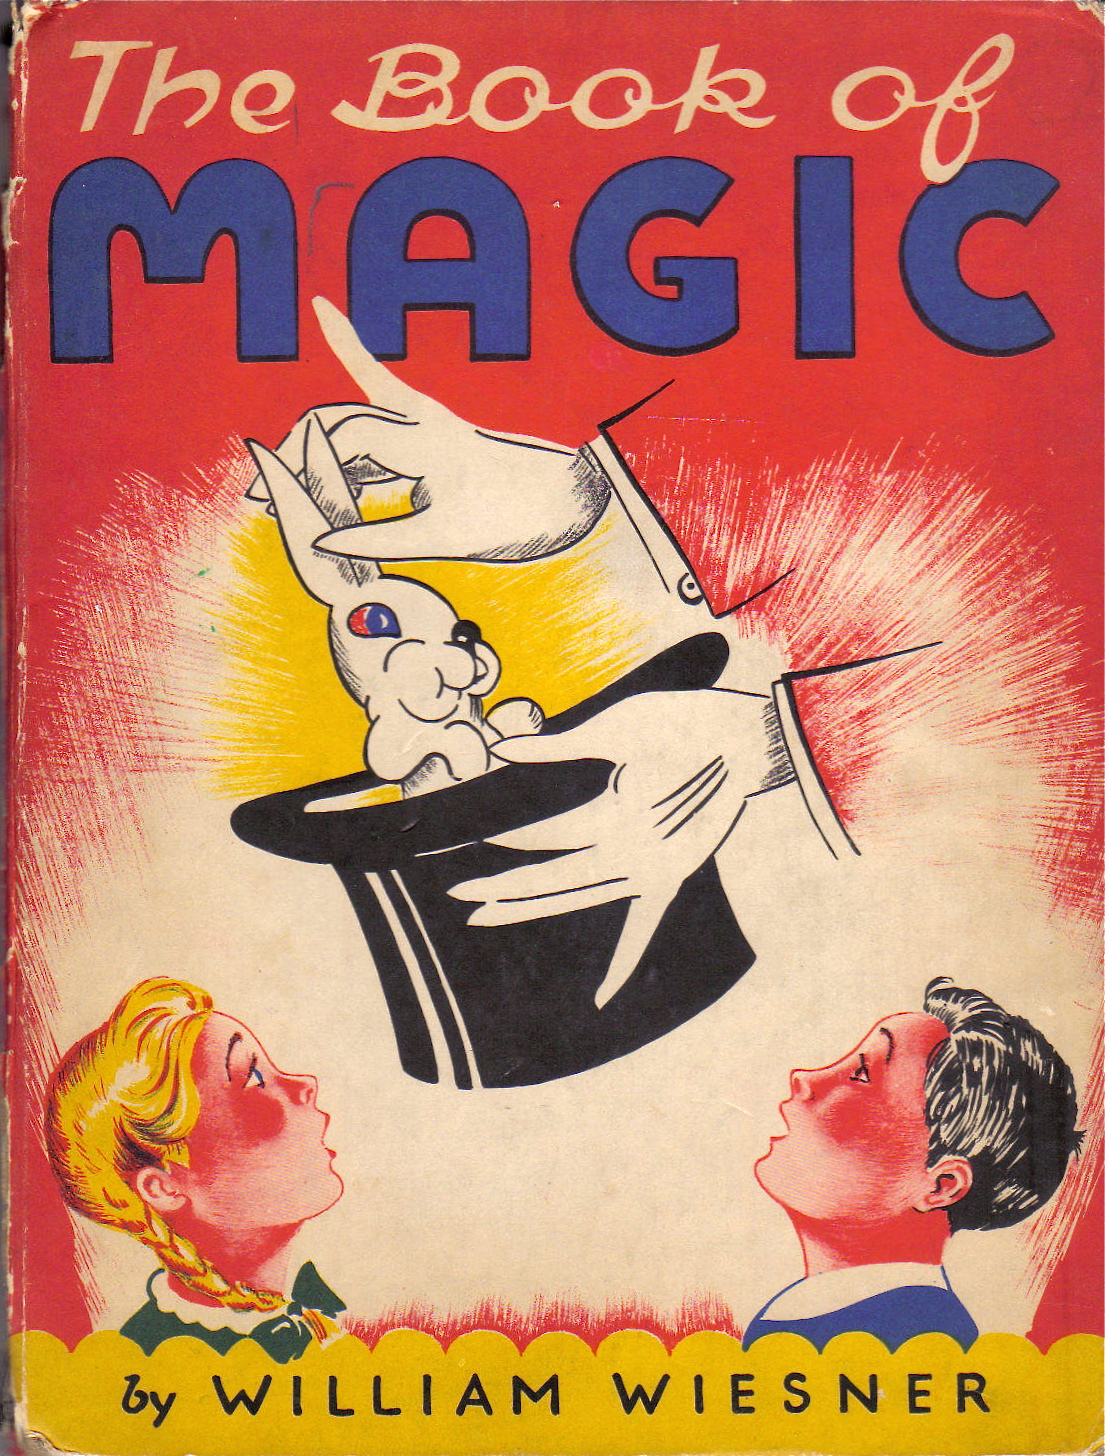 Wiesner, William[Arresto the Great Presents] The Book of Magic.Grosset and Dunlap, 1944. First Edition